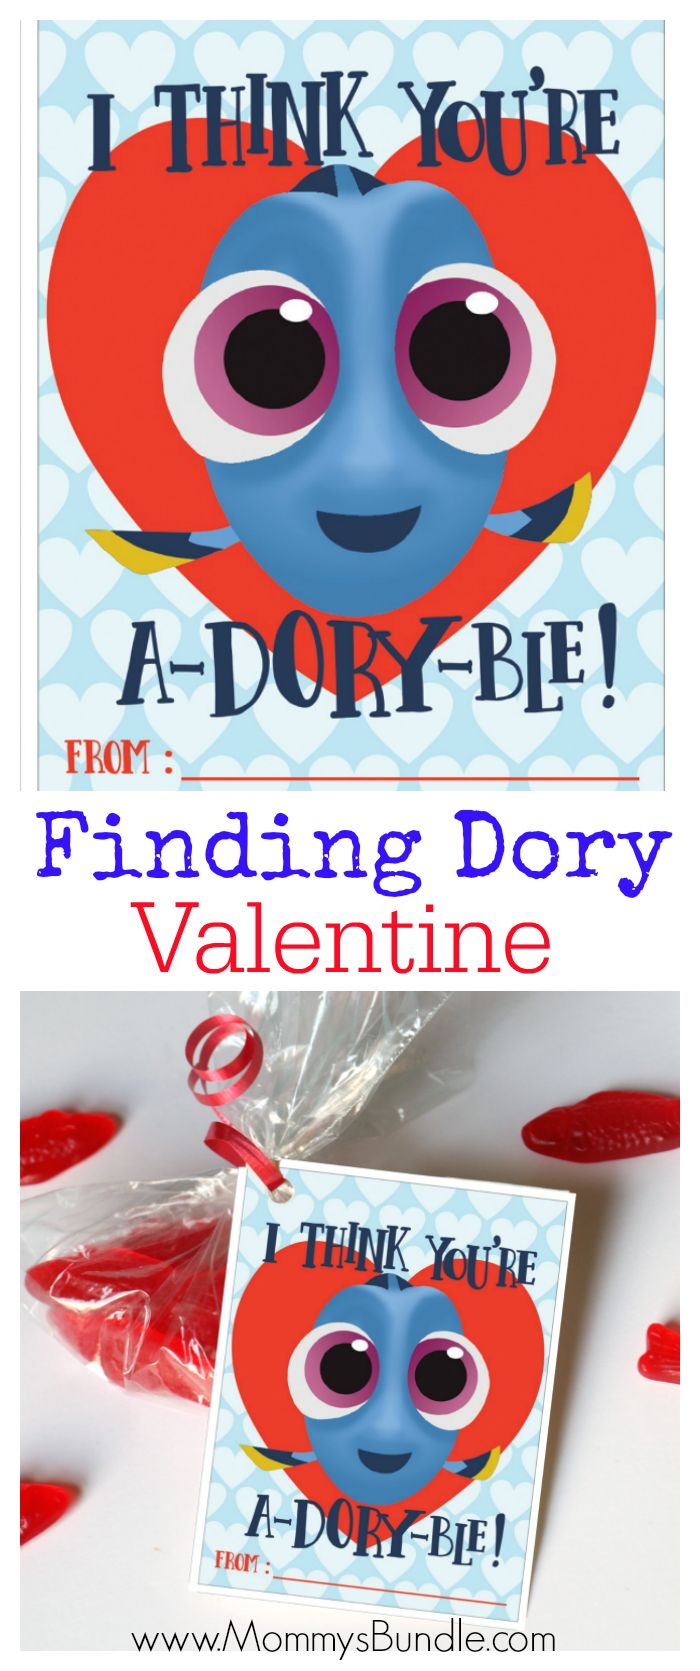 Adorable Finding Dory printable Valentines for kids! The perfect Valentine for a preschooler or small child to share with classmates at school. Click through to get the free printables!